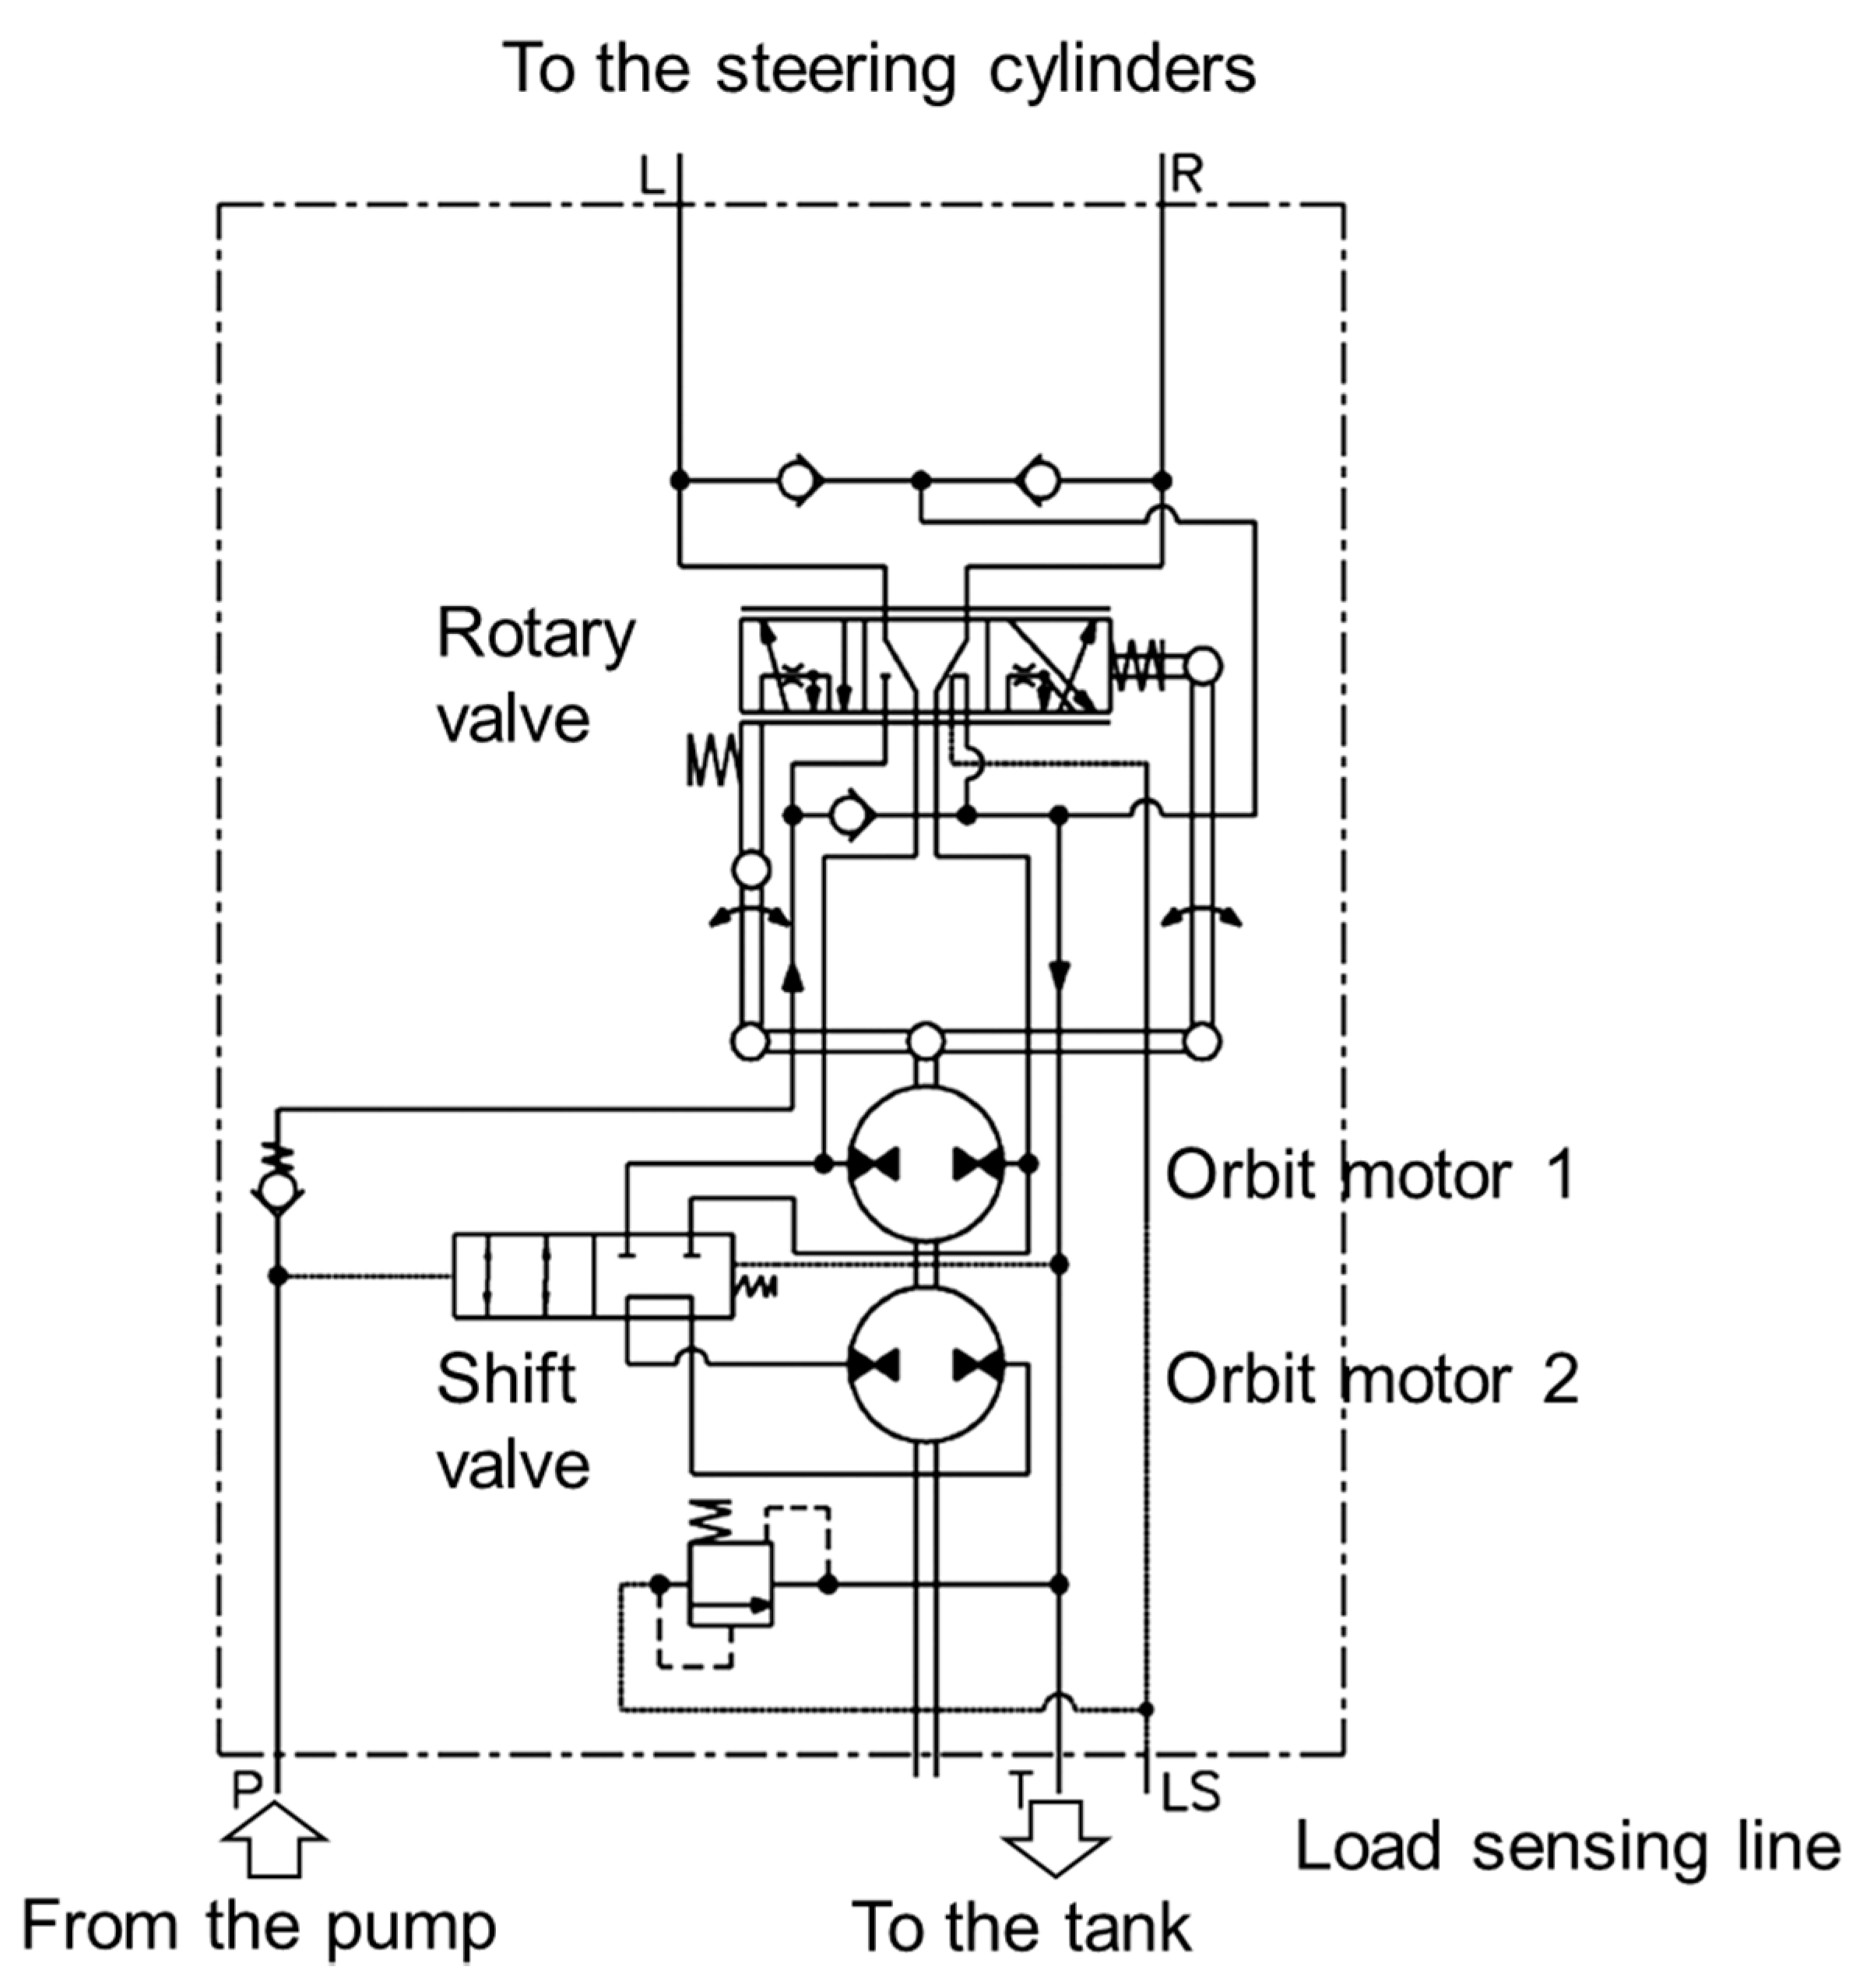 Energies Free Full Text Modelling And Simulation Of A This Application Diagram Indicates How Loadsensing Valves Control 11 00230 G001